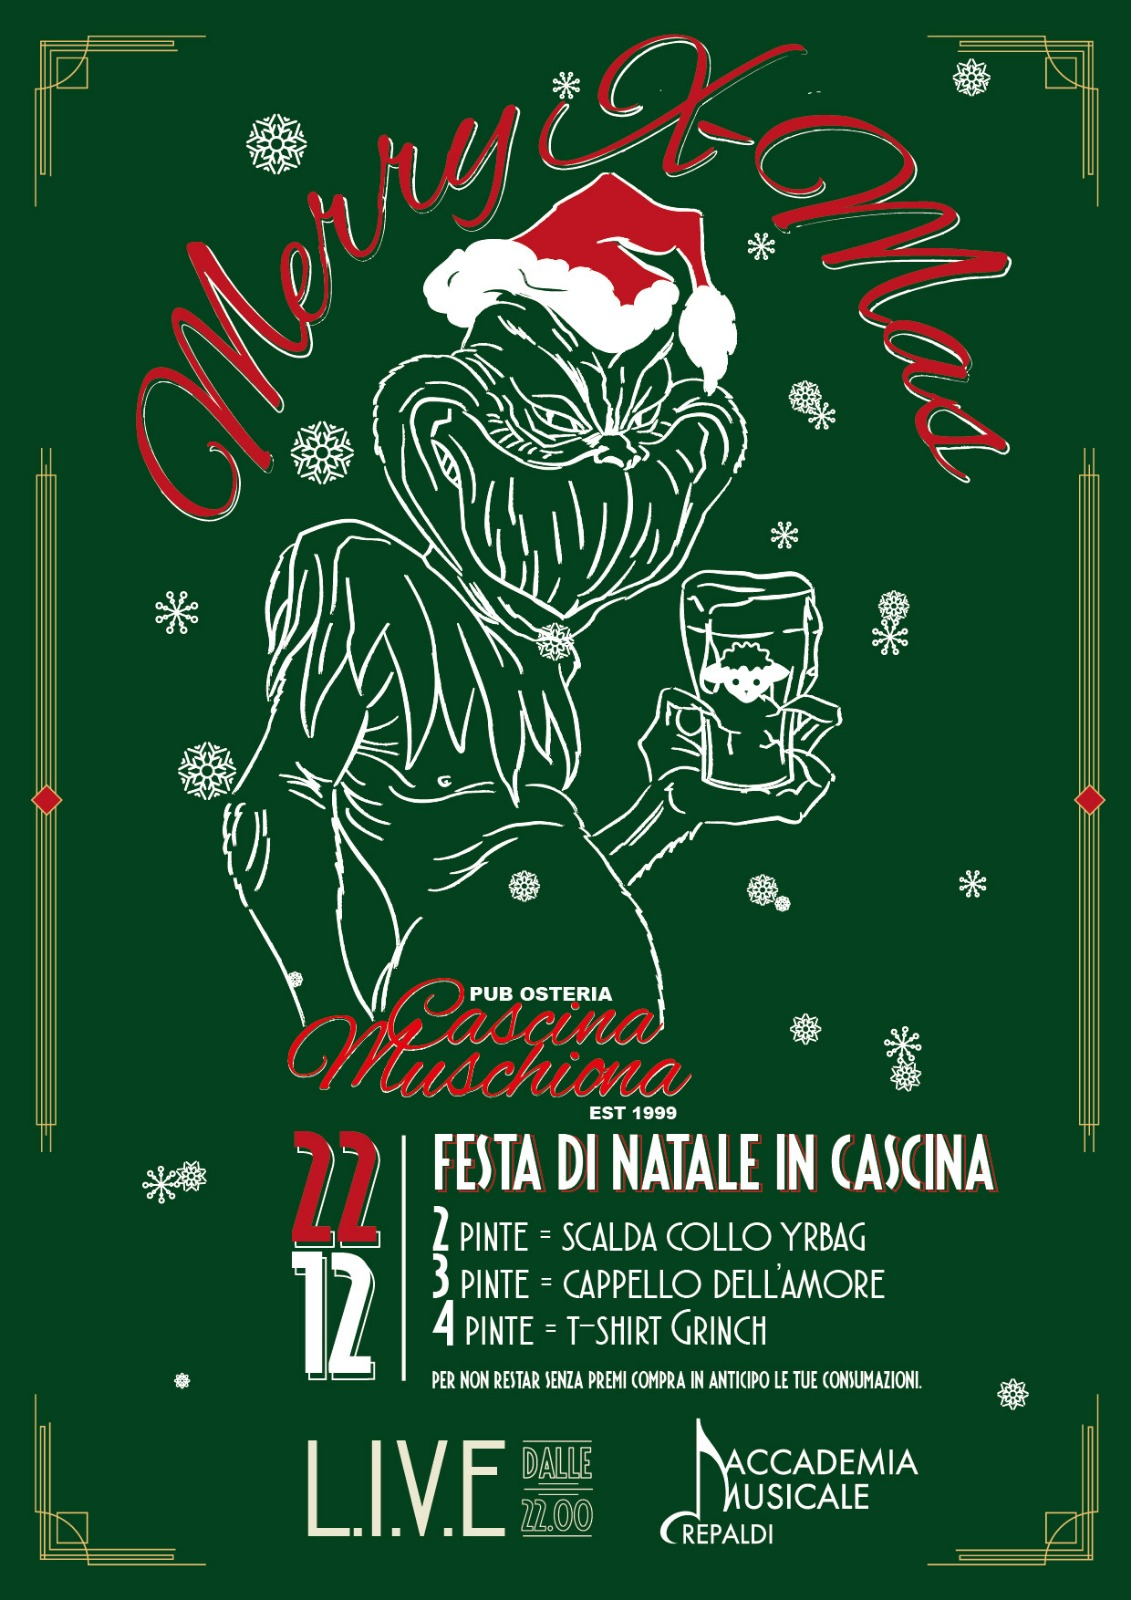 Xmas Party in Cascina Muschiona